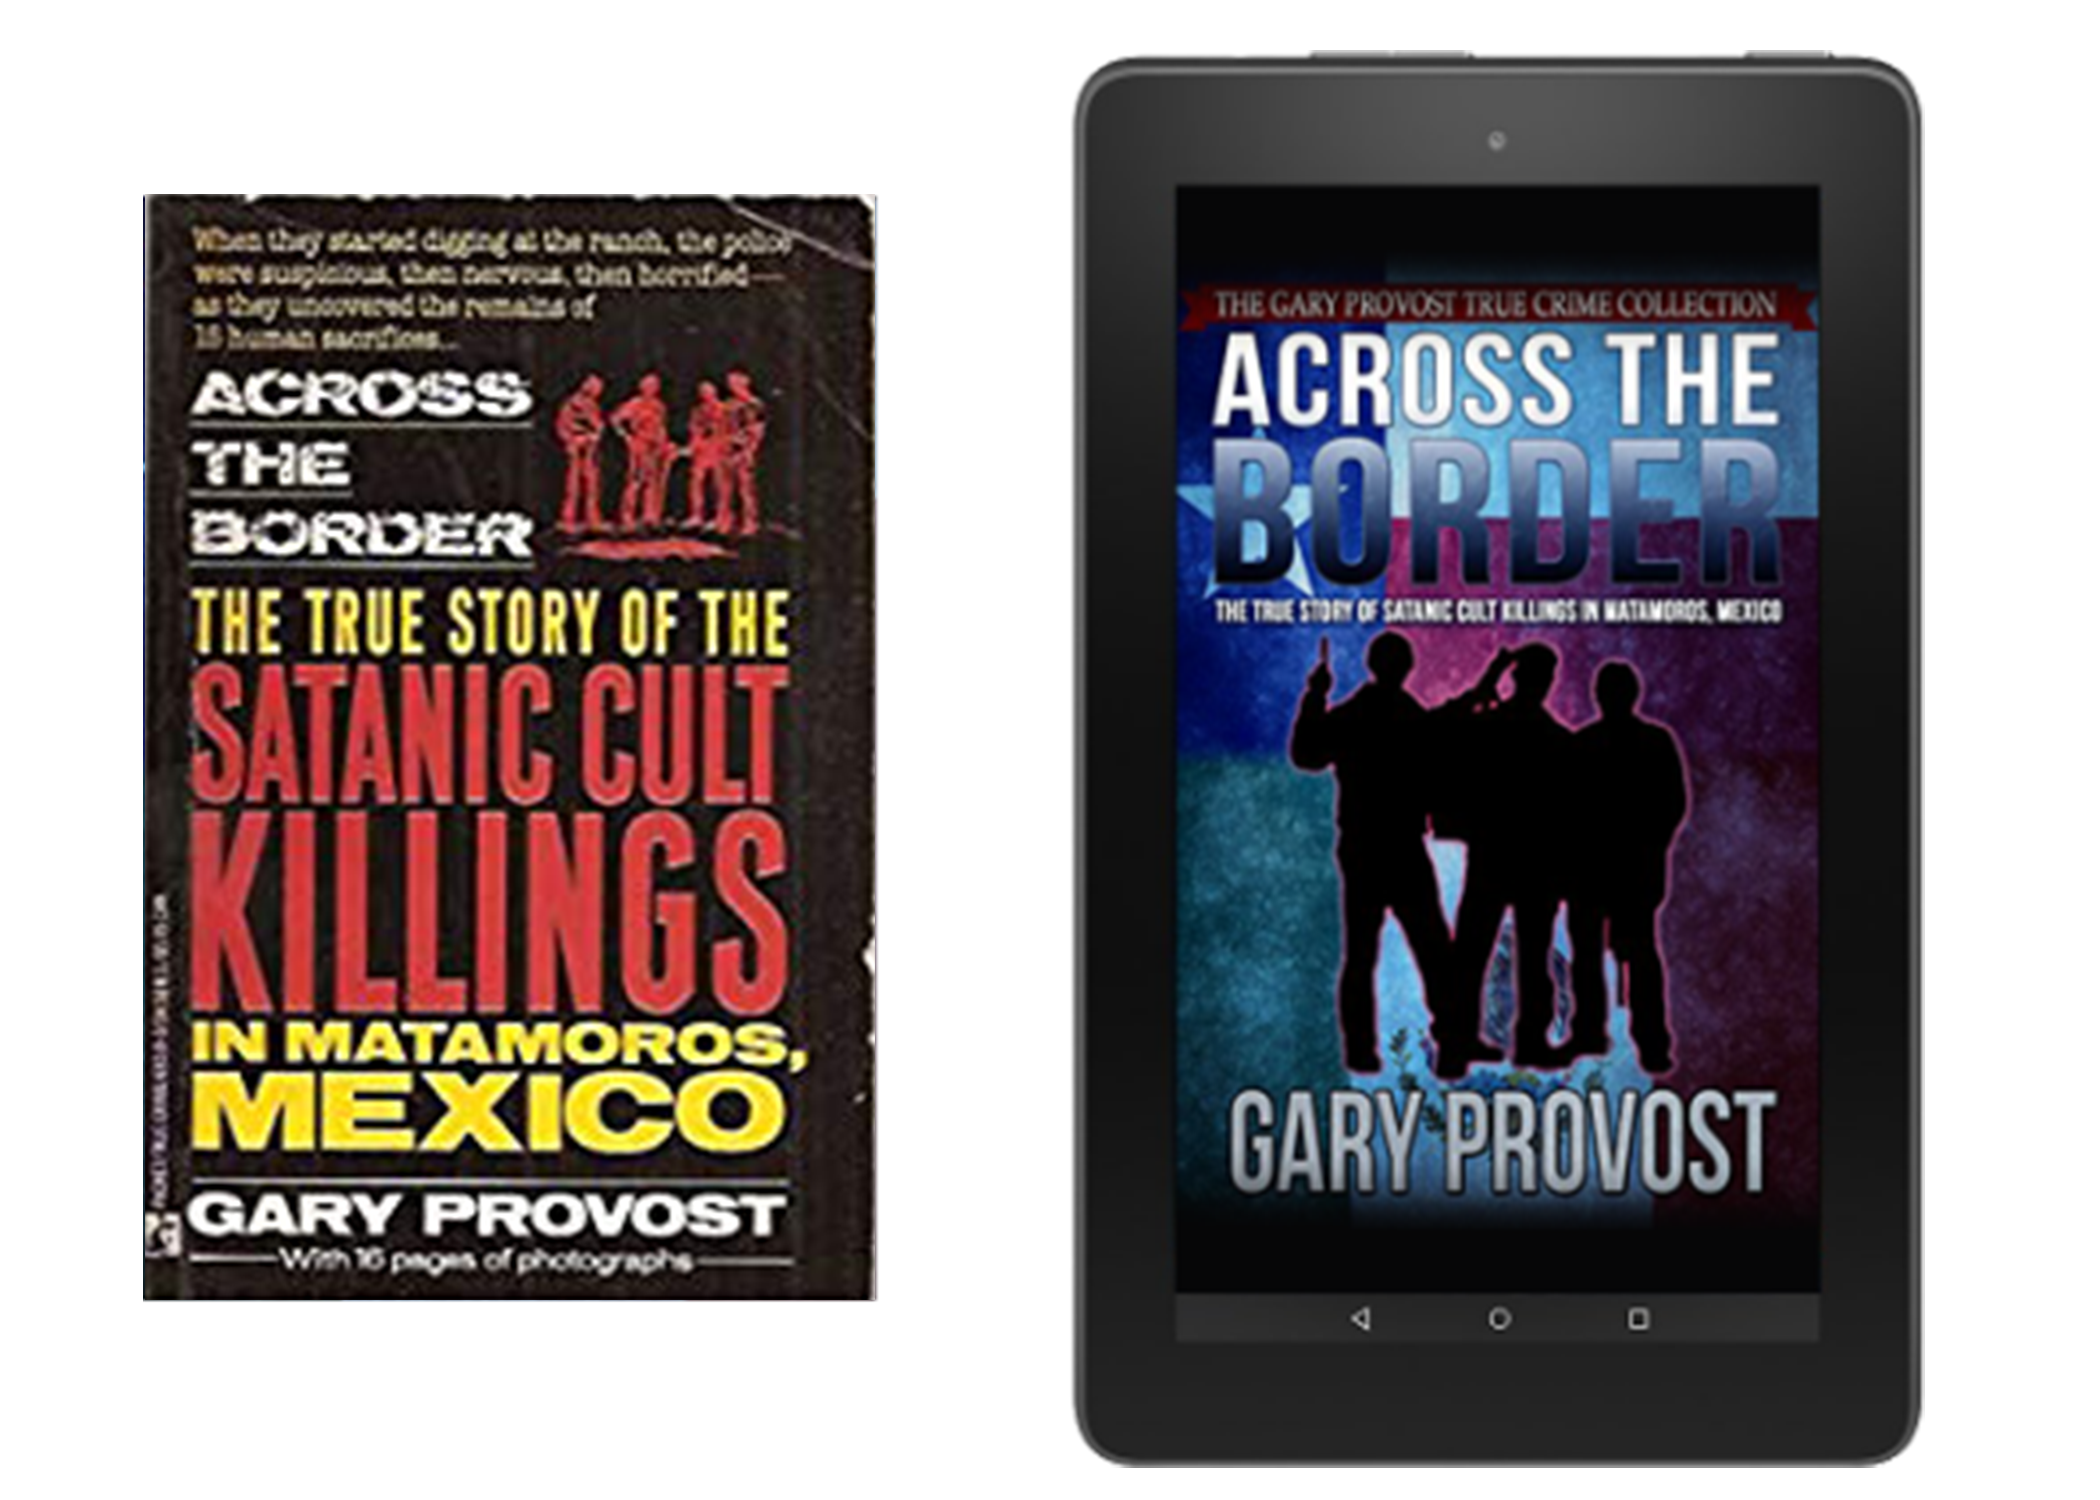 Across the Border: The True Story of the Satanic Cult Killings in Matamoros, Mexico